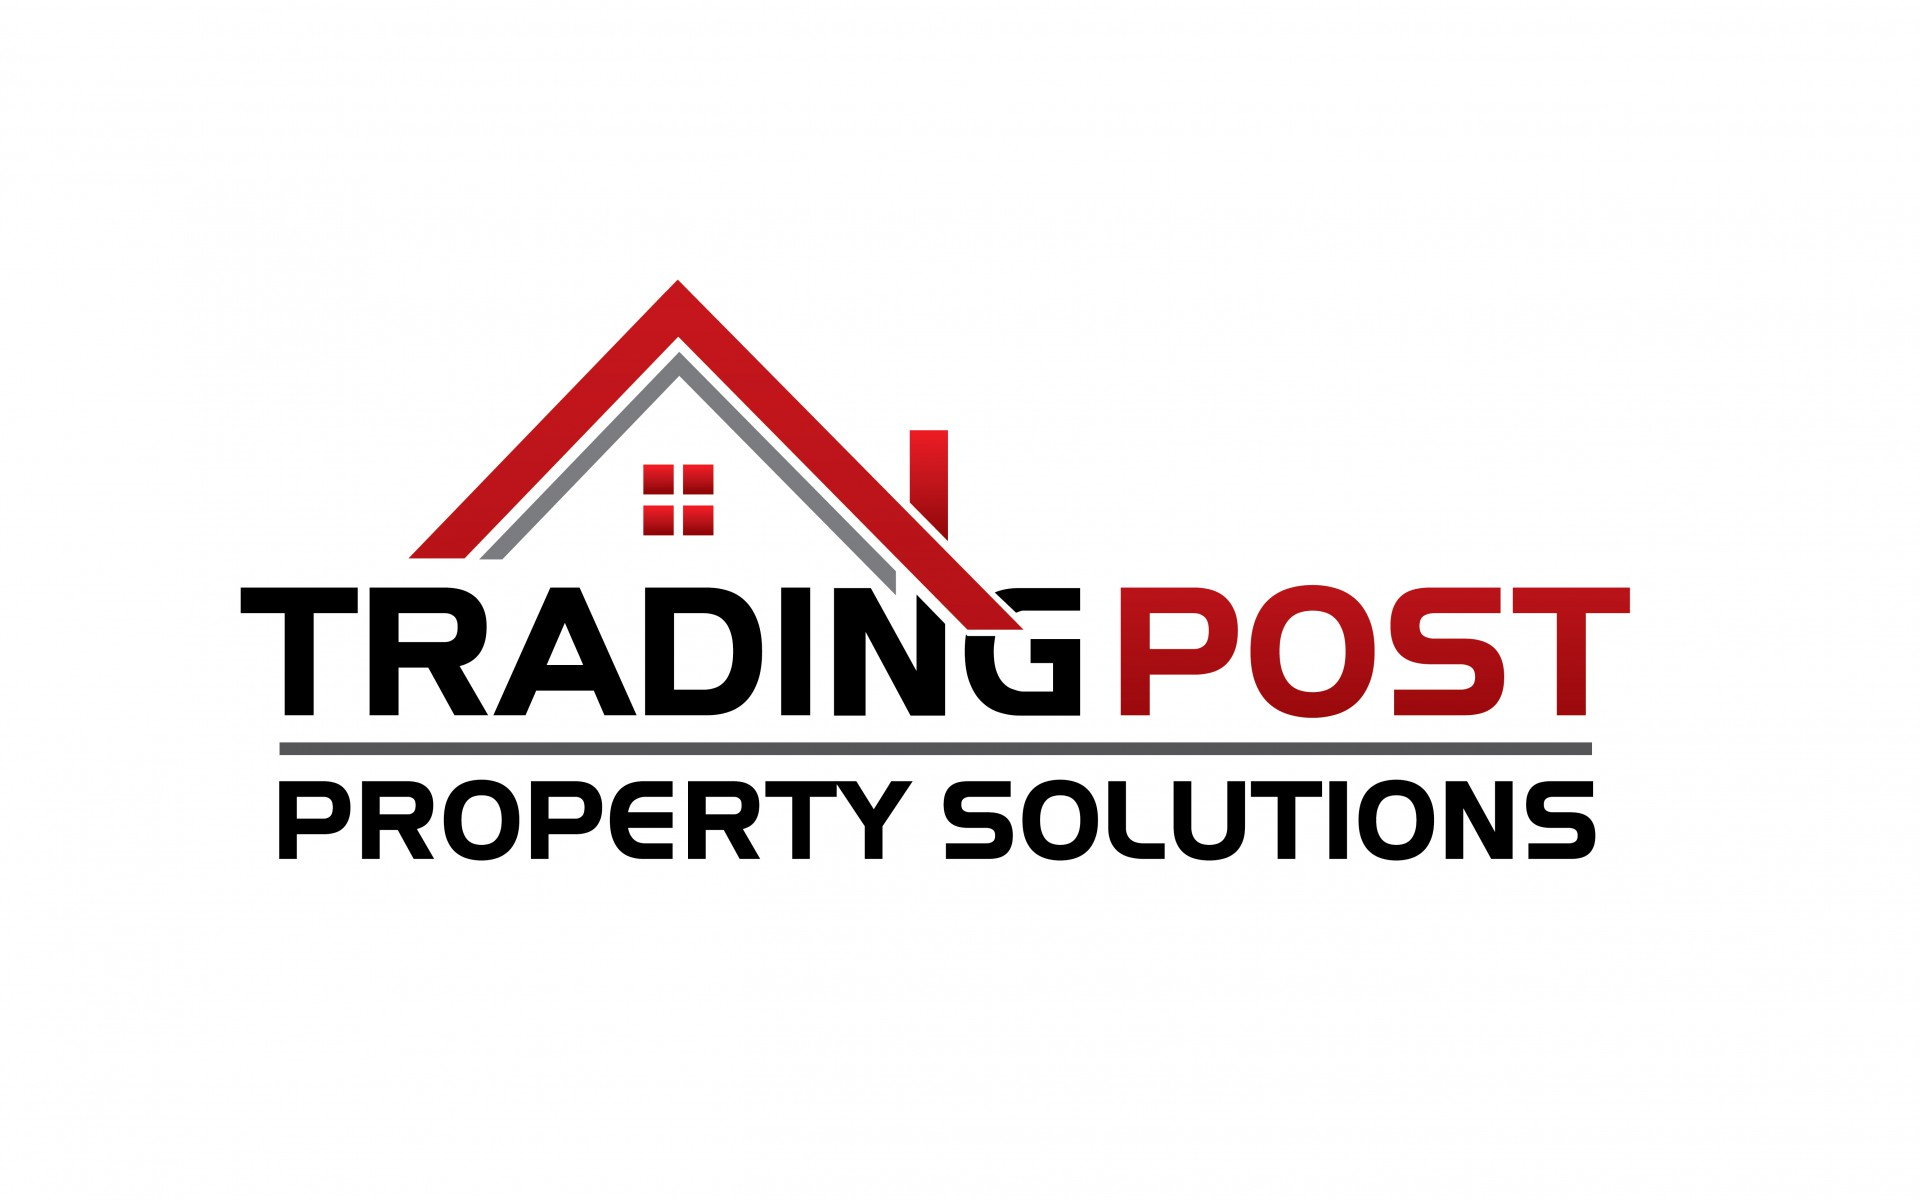 The Trading Post Property Solutions Ltd